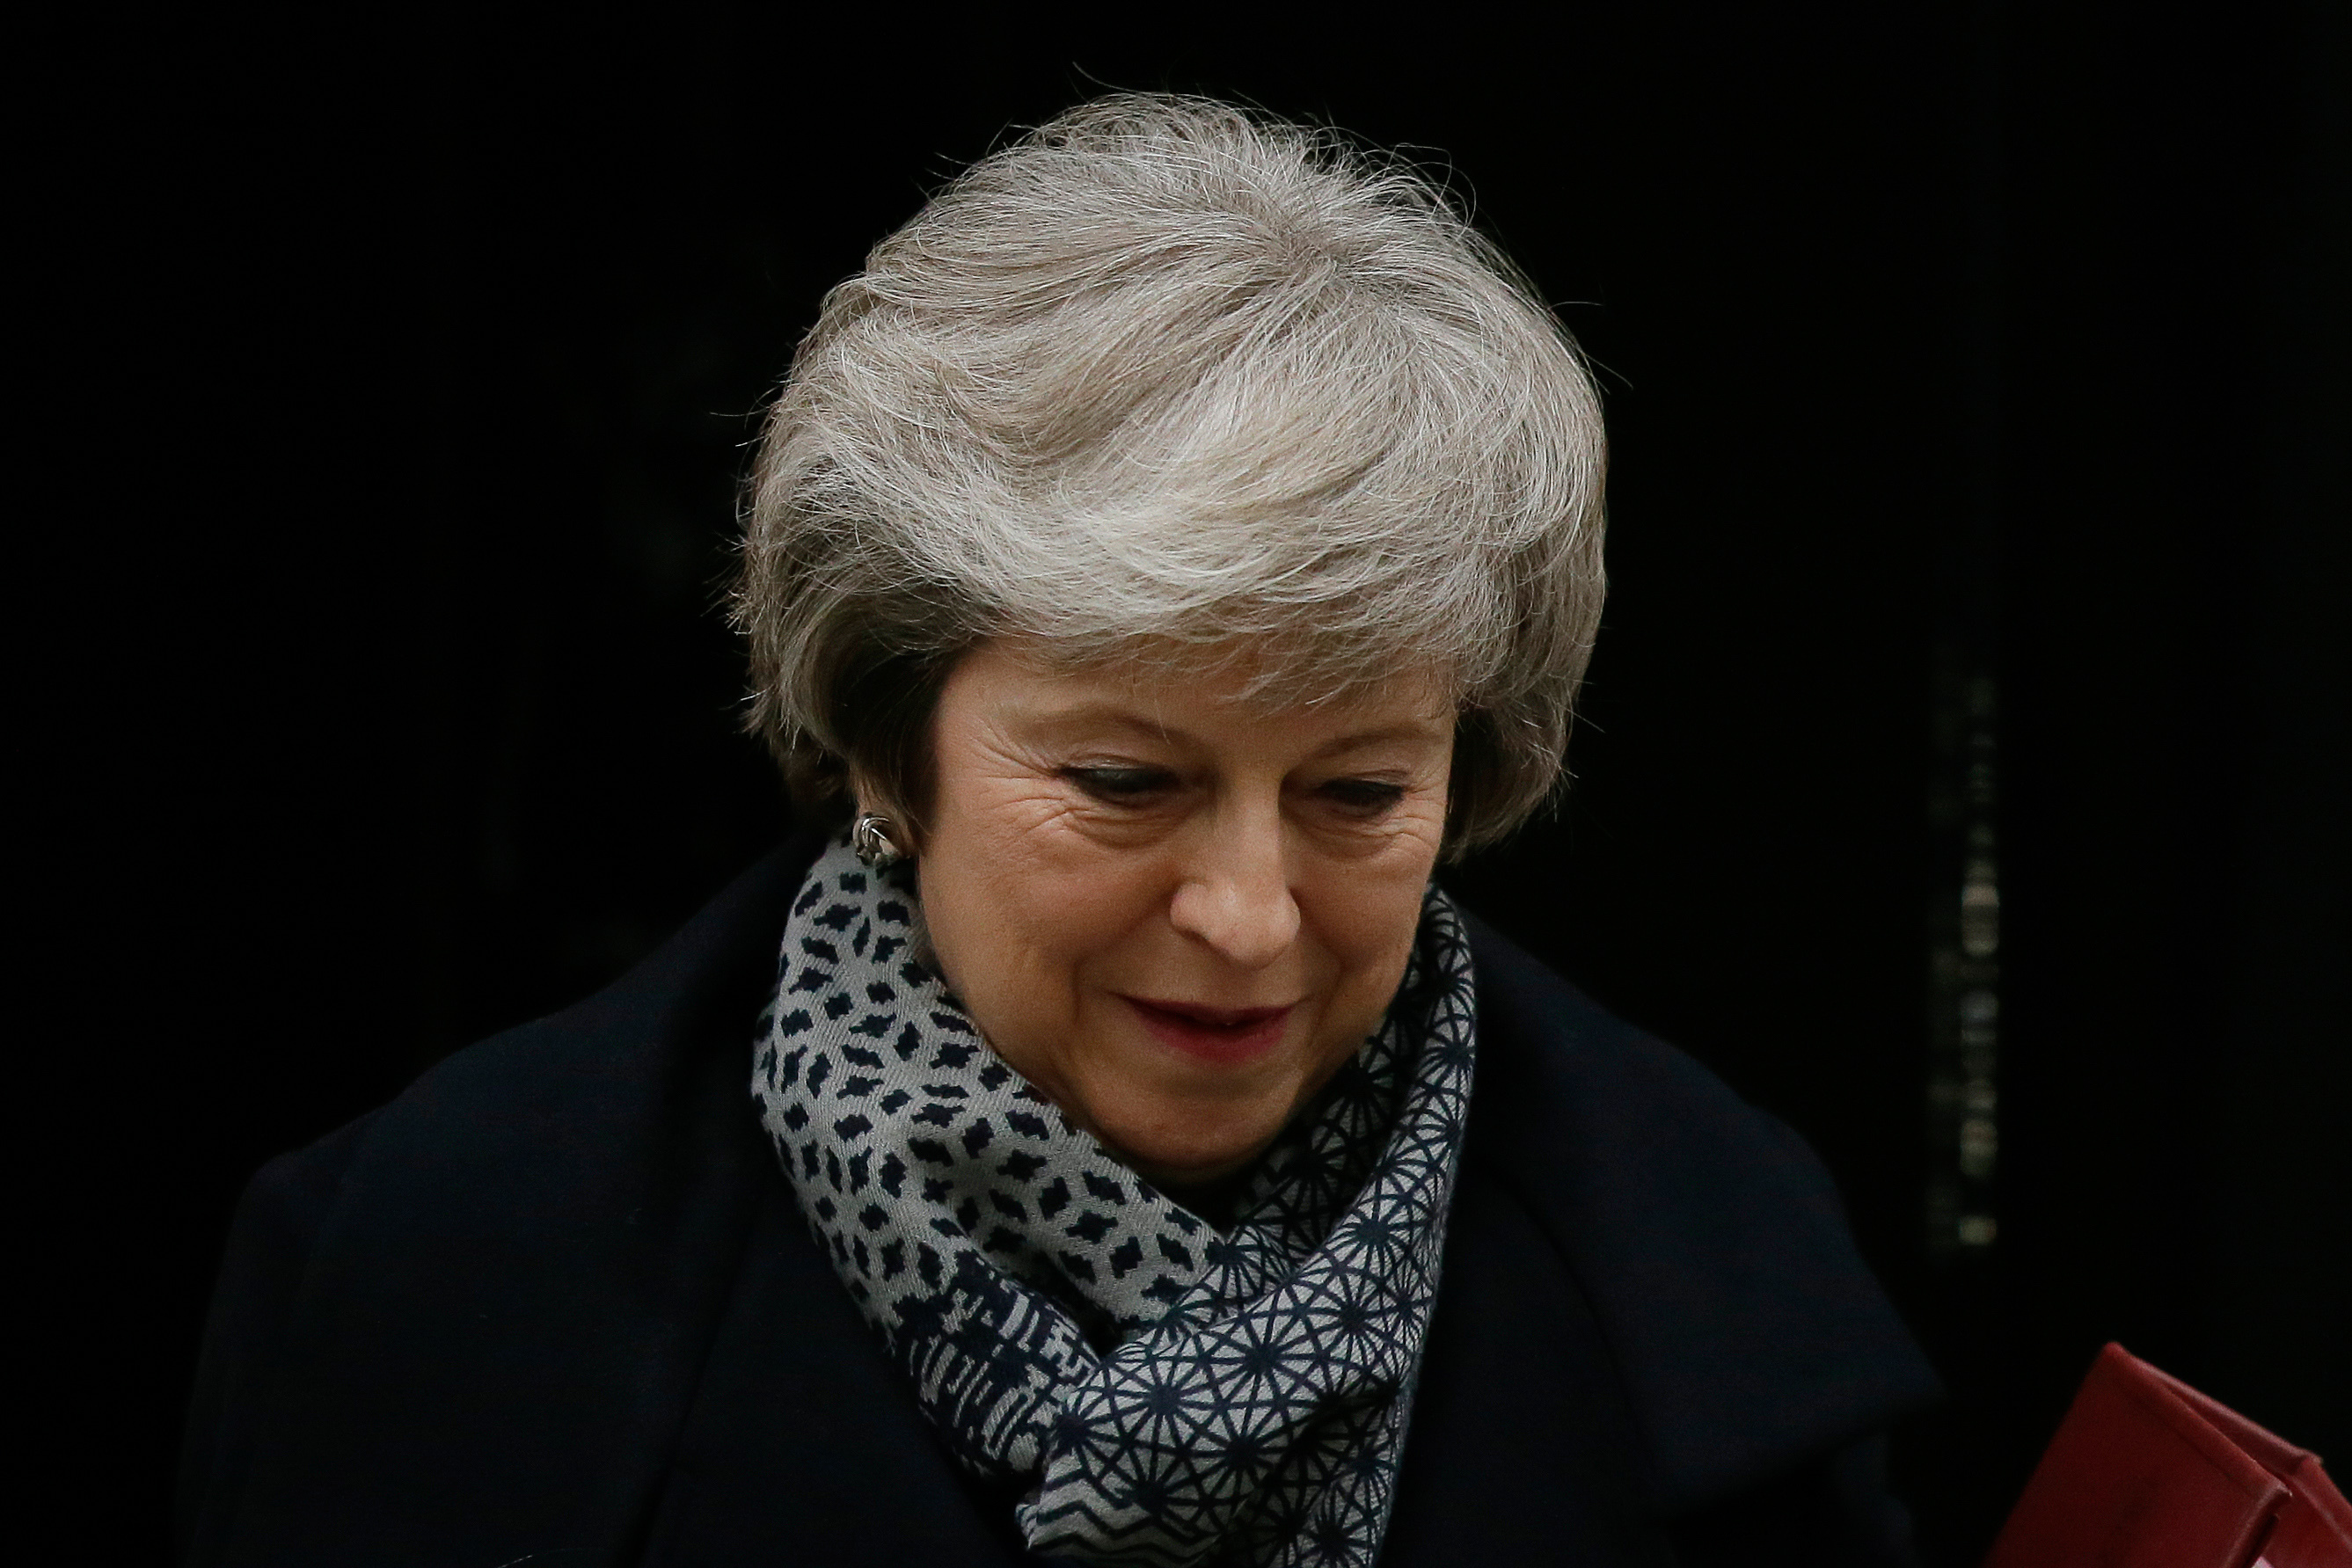 PM promises cross-party talks after her Brexit plans suffer historic defeat